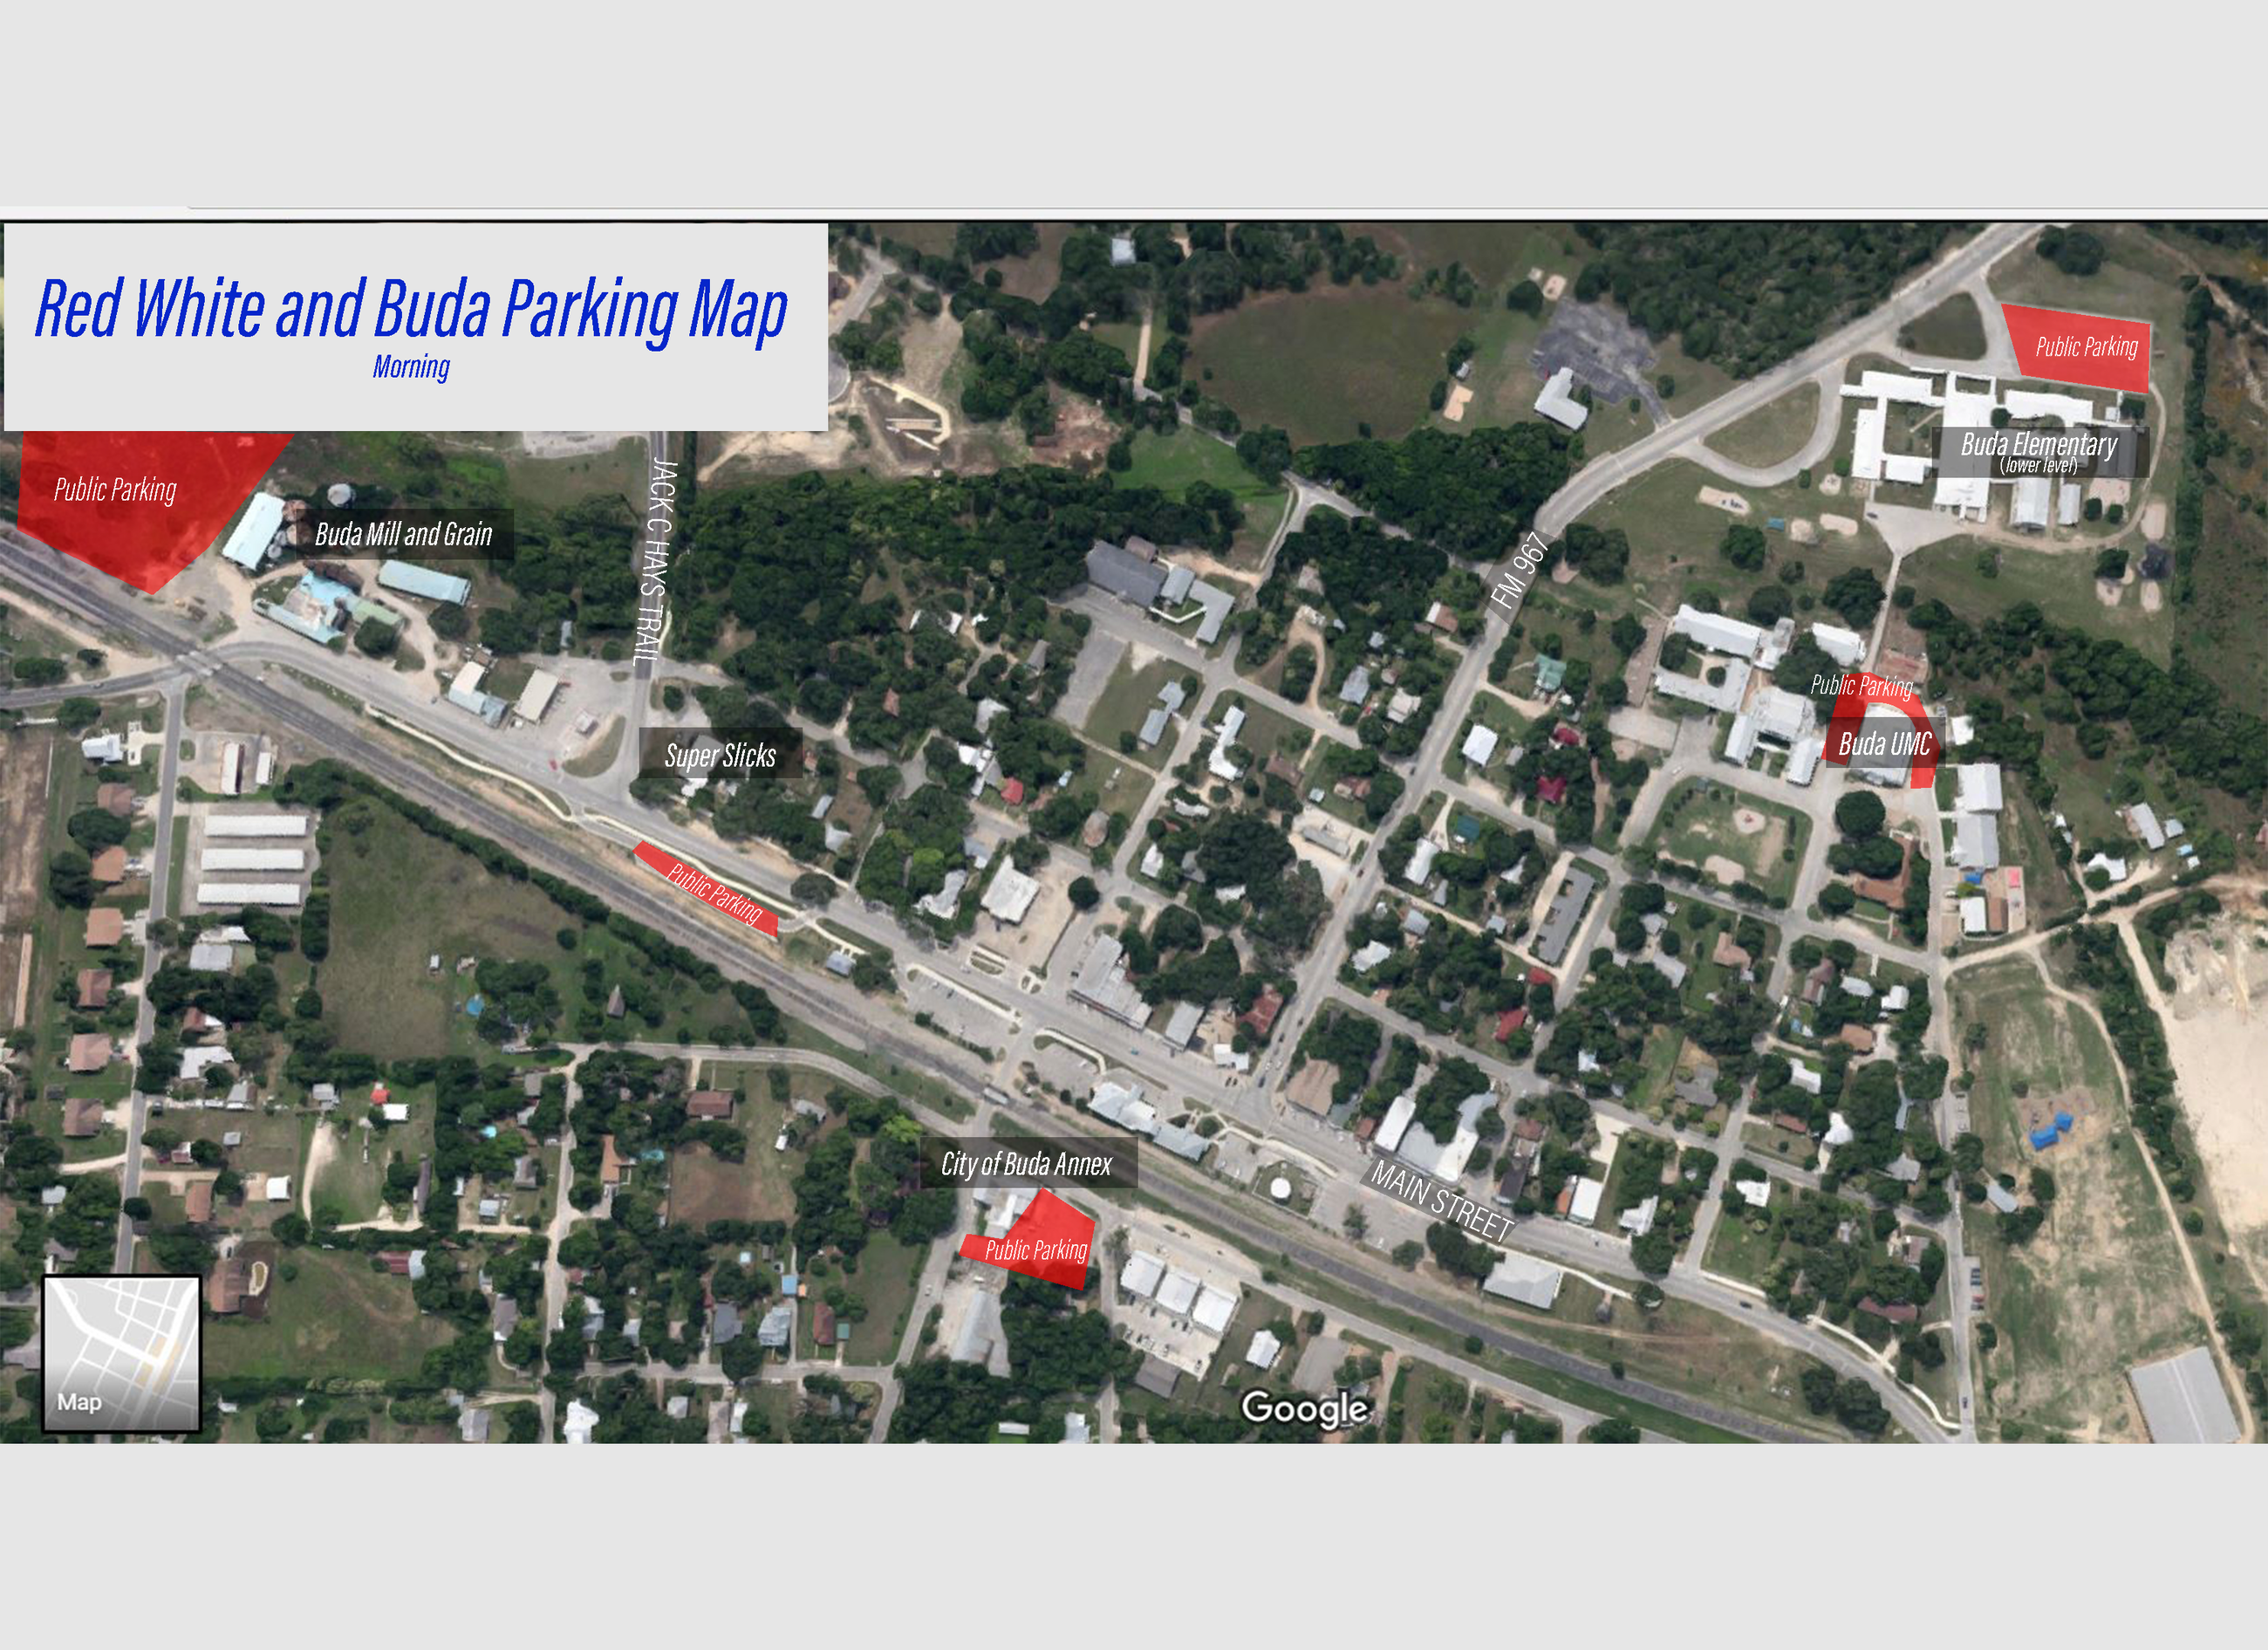 Red White and Buda Parking Map For Morning Events - July 4, 2108